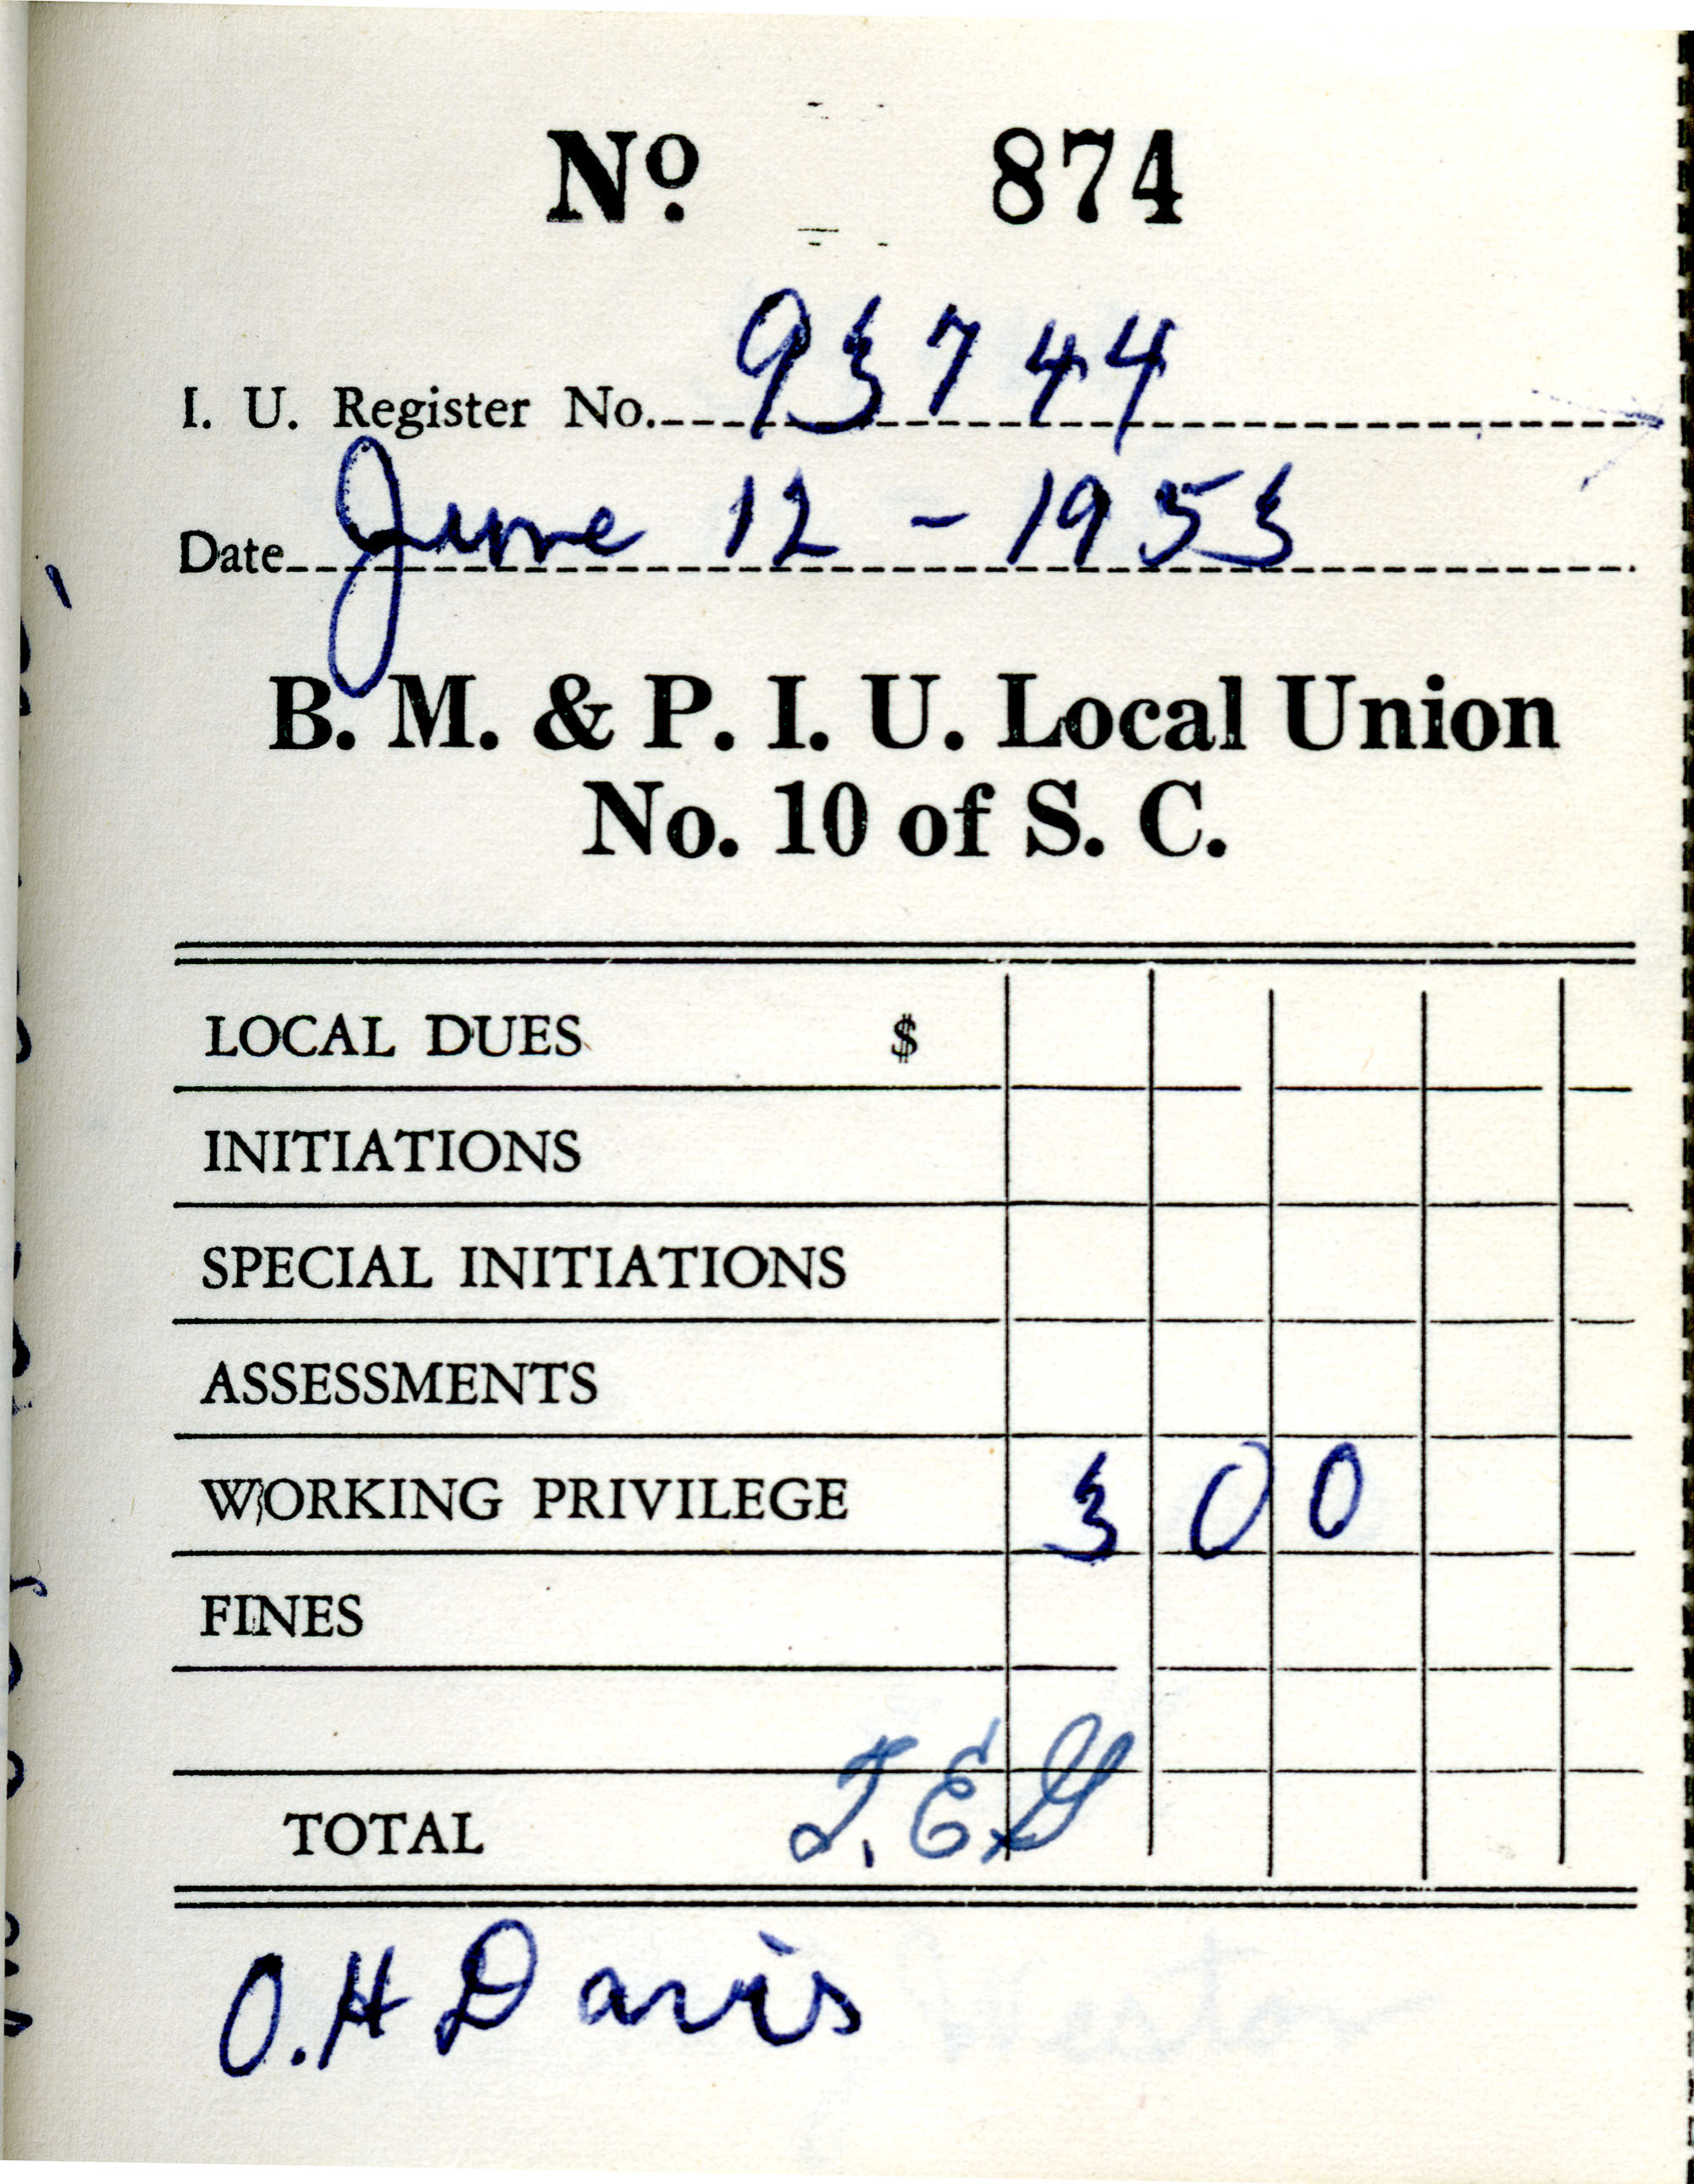 Receipt Book 3, Page 19